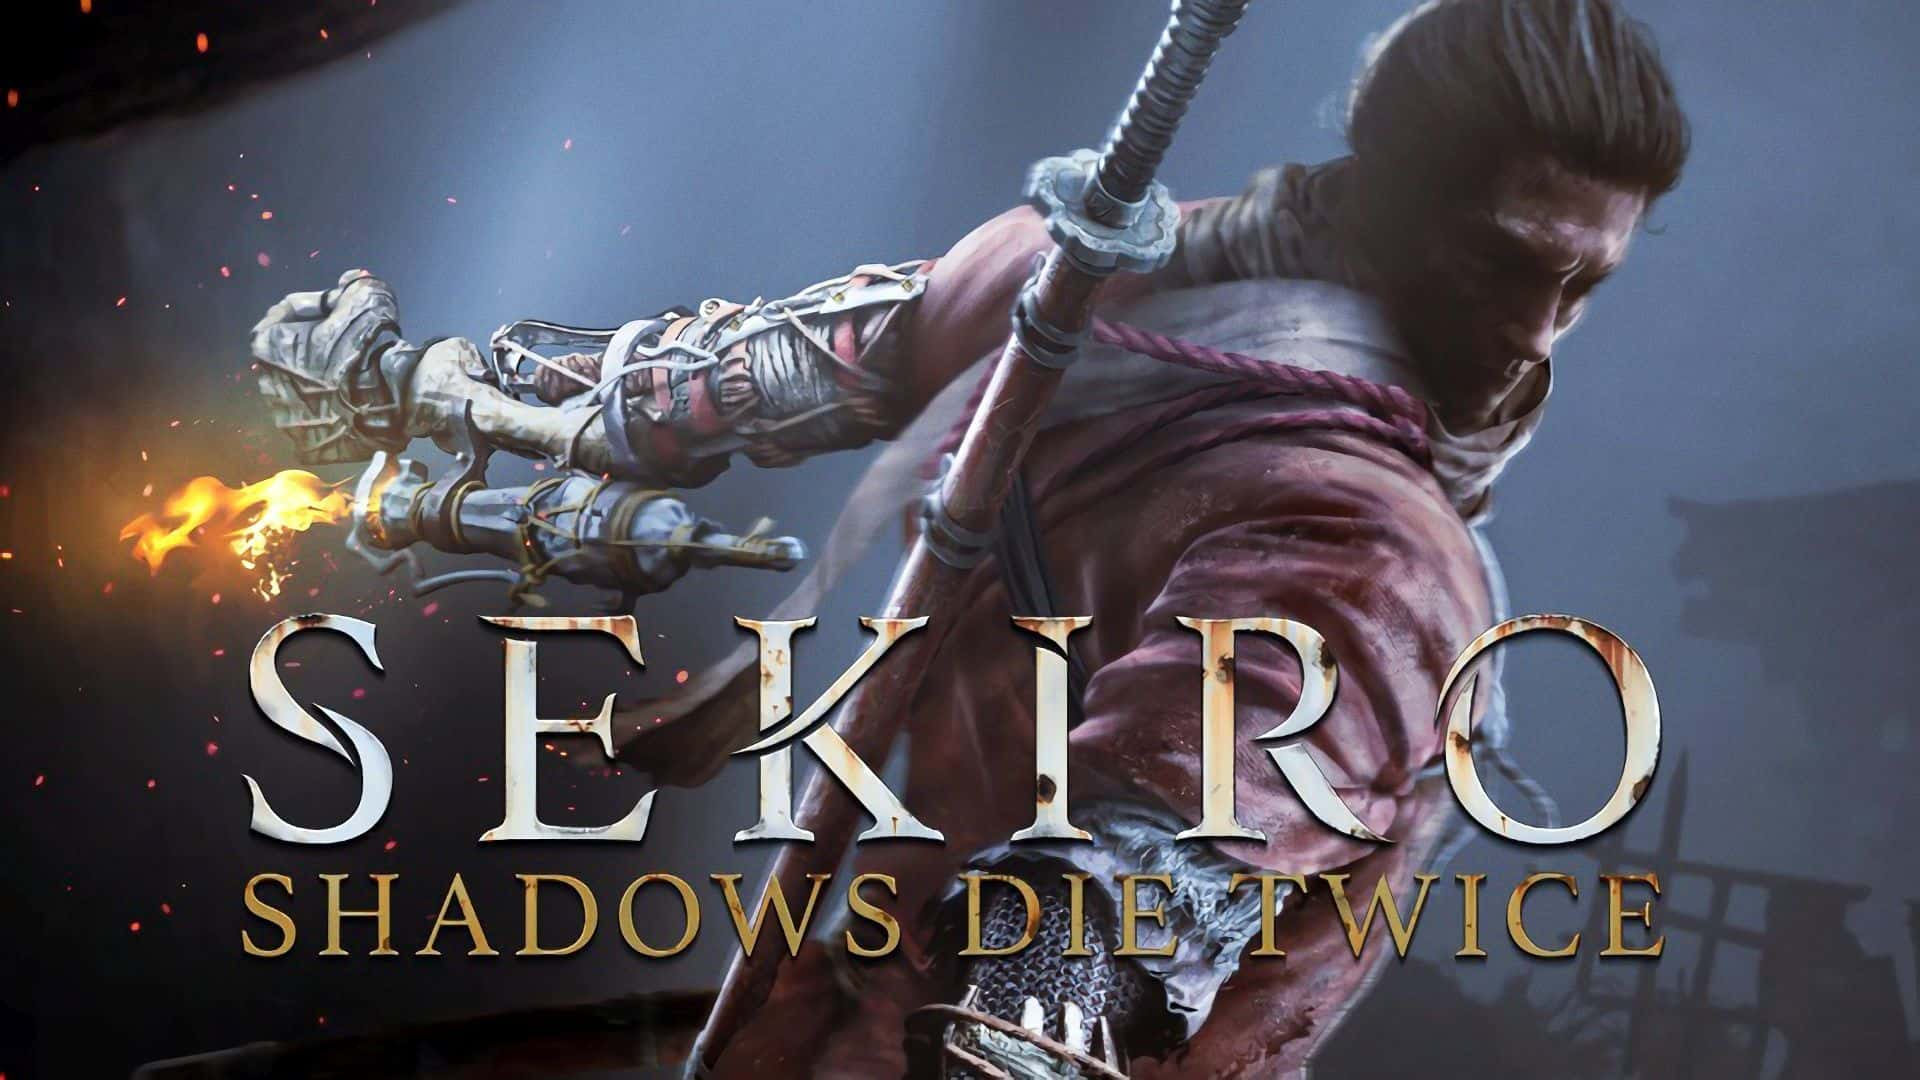 Sekiro: Shadows Die Twice Kills It With More Than 2 Million Copies Sold Worldwide In Less Than 10 Days